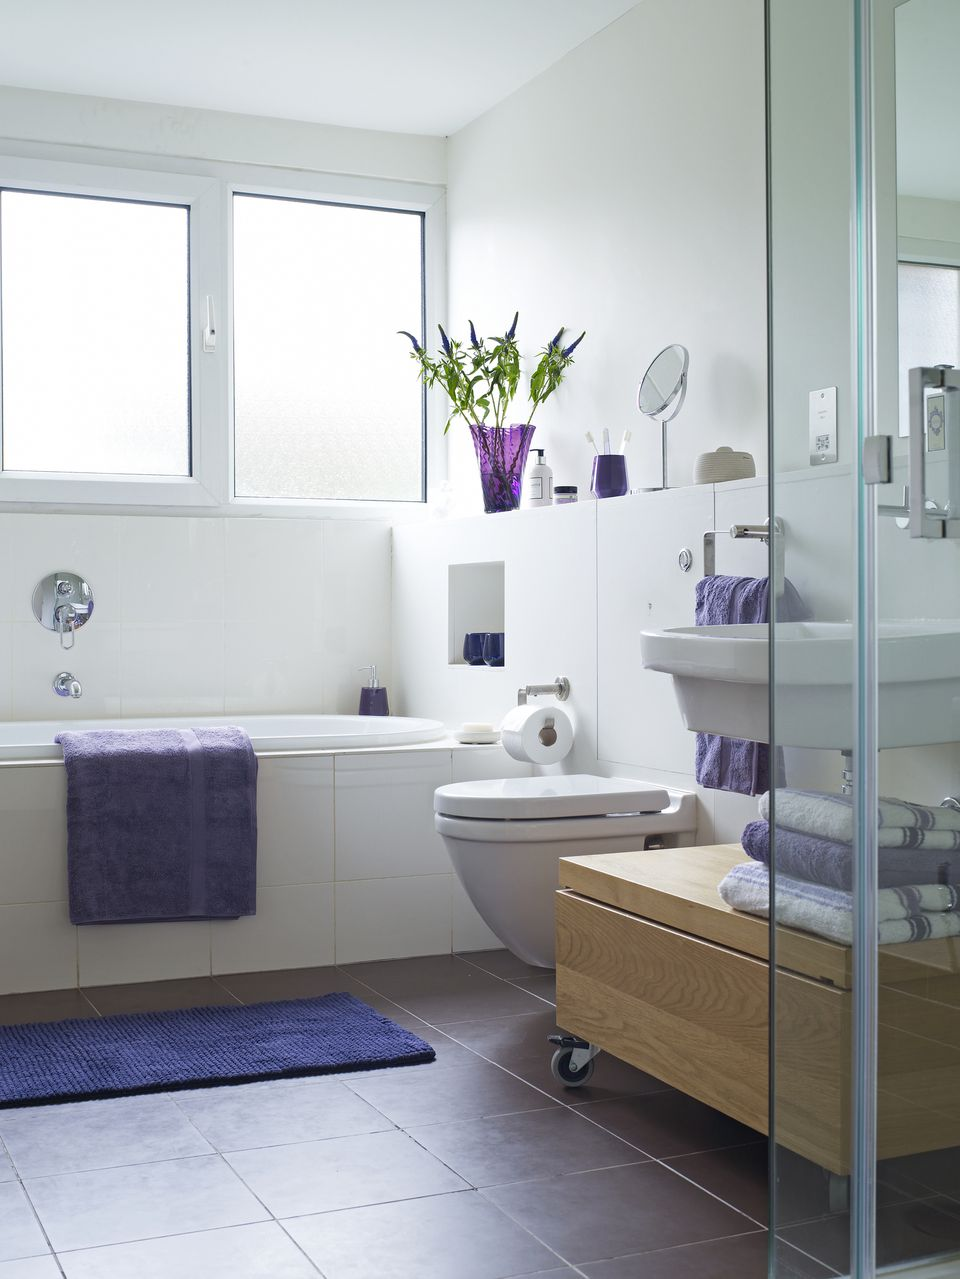 Small Bathrooms Design Inspiration 25 Killer Small Bathroom Design Tips Review